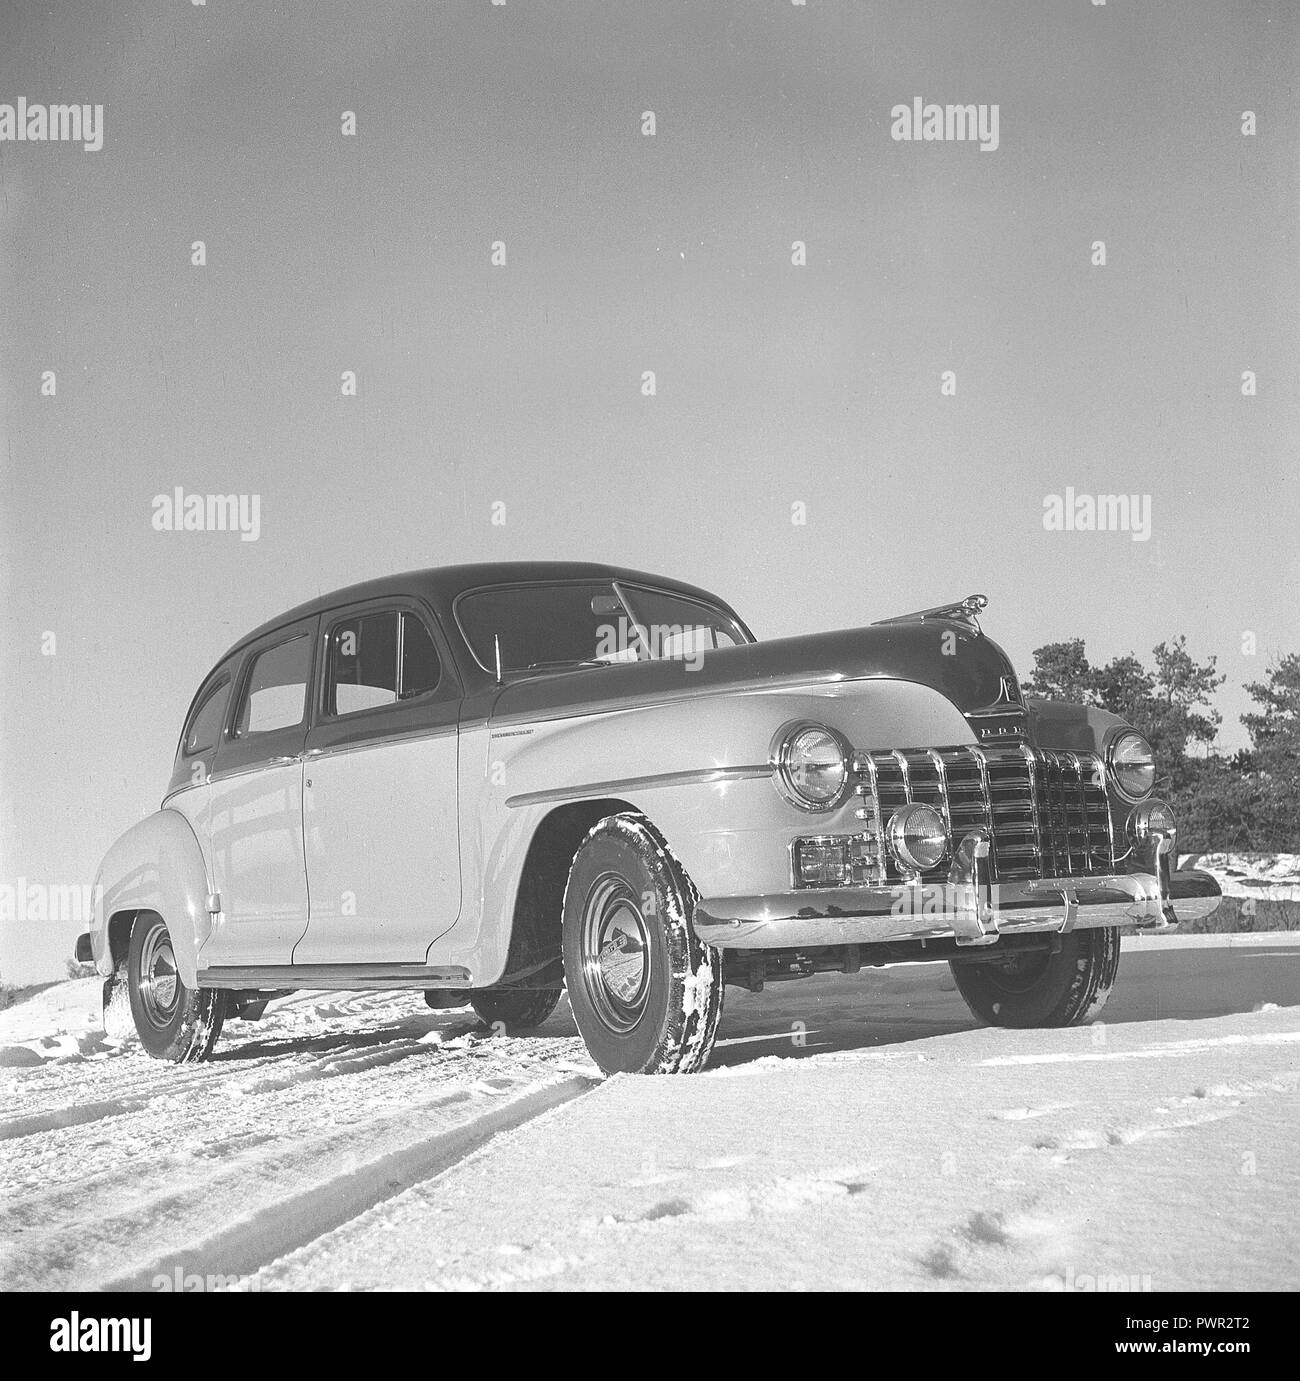 Cars in the 1940s. By the look of it, a brand new american Dodge car, parked in the sun on a winter day. The crome on the fender, grill, lists and hubcaps, sparkles in the sun. Sweden 1940s. Photo Kristoffersson ref AM90-4 - Stock Image